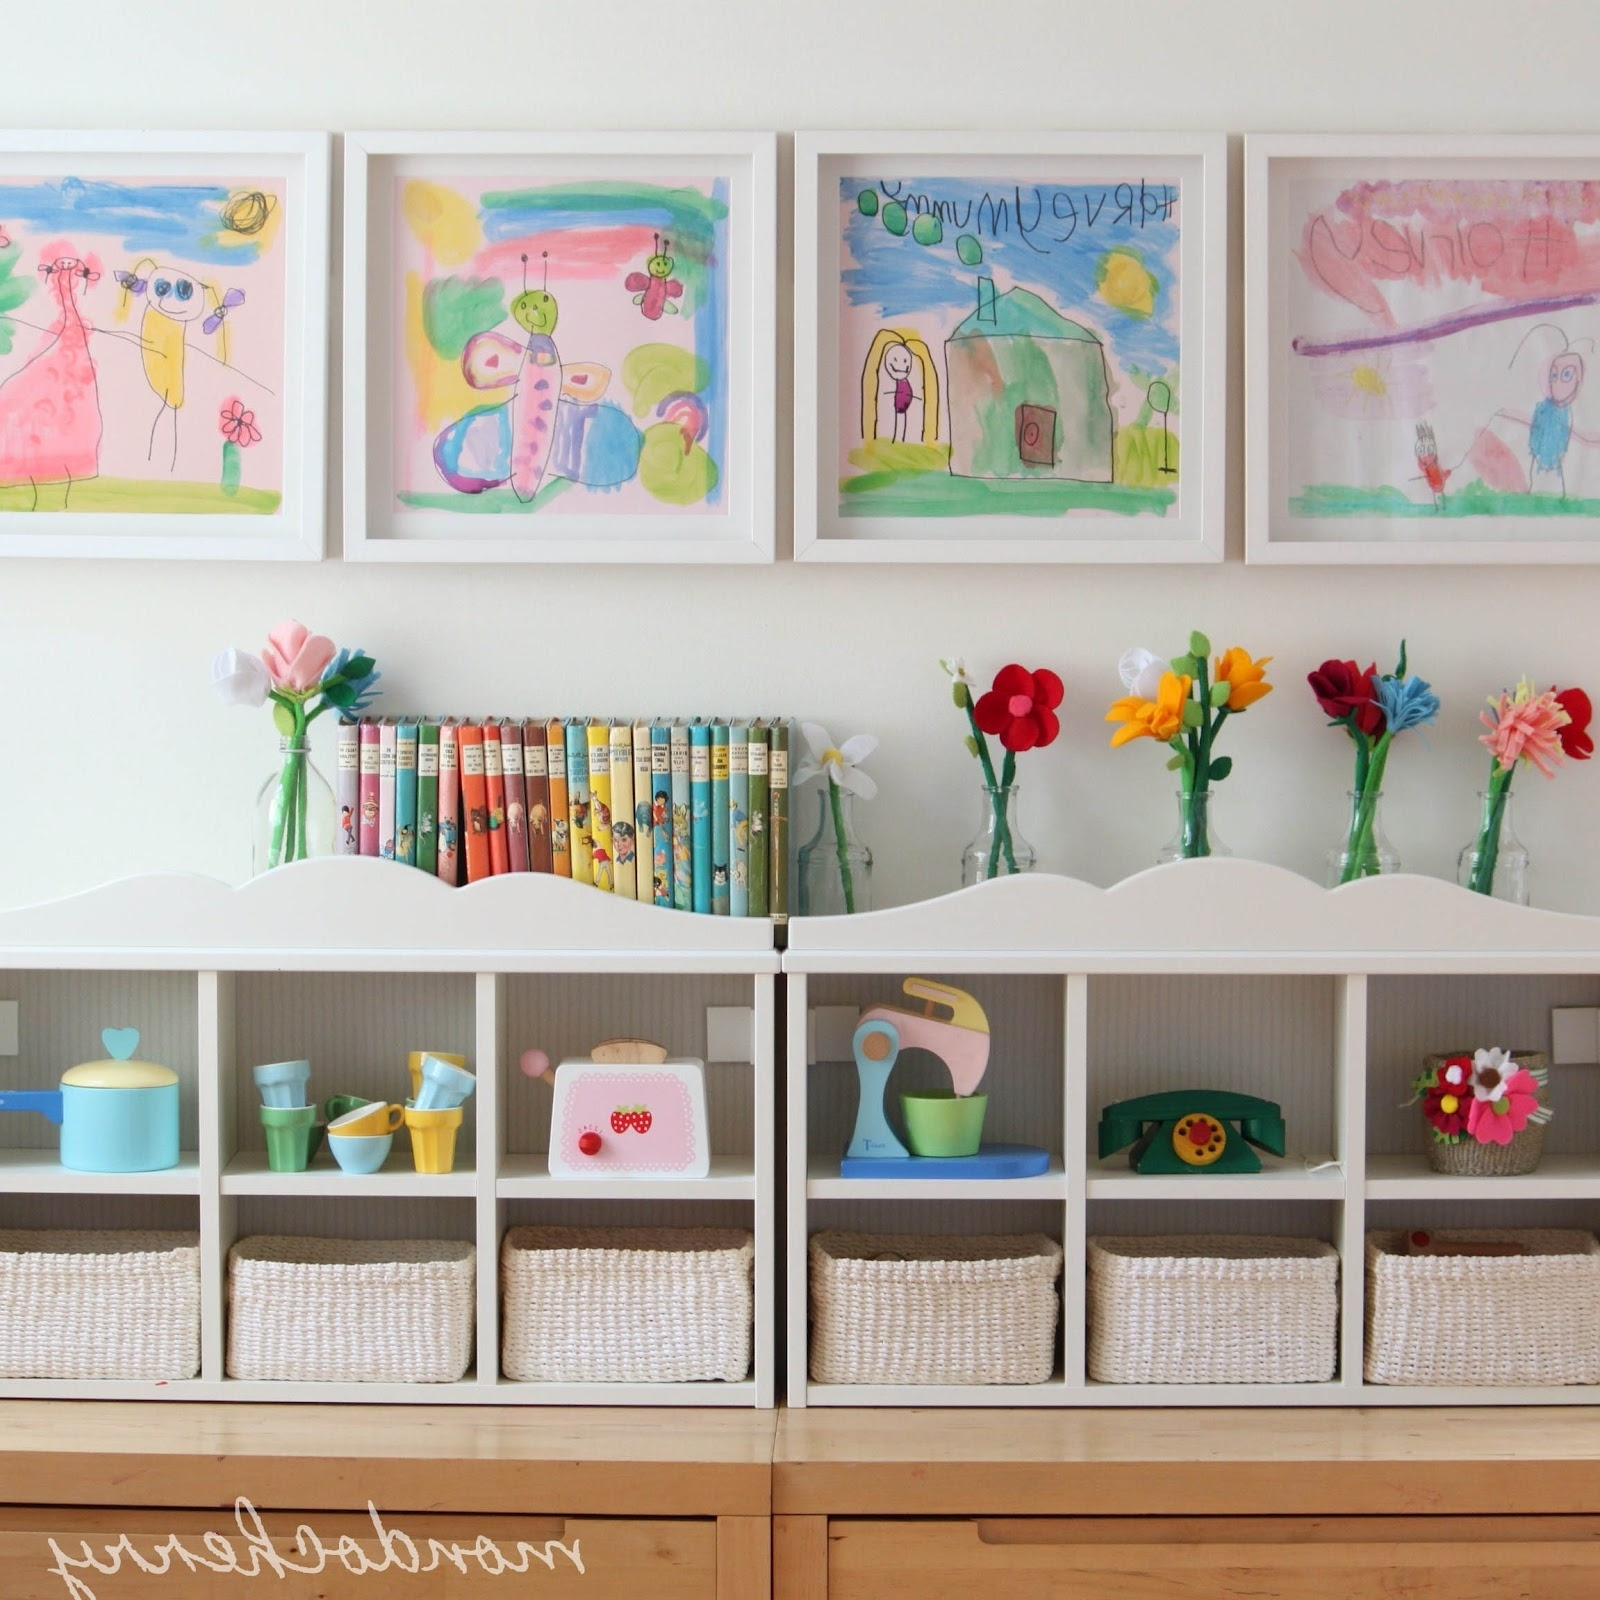 Best And Newest Playroom Wall Art Ideas • Walls Ideas Pertaining To Playroom Wall Art (View 2 of 15)